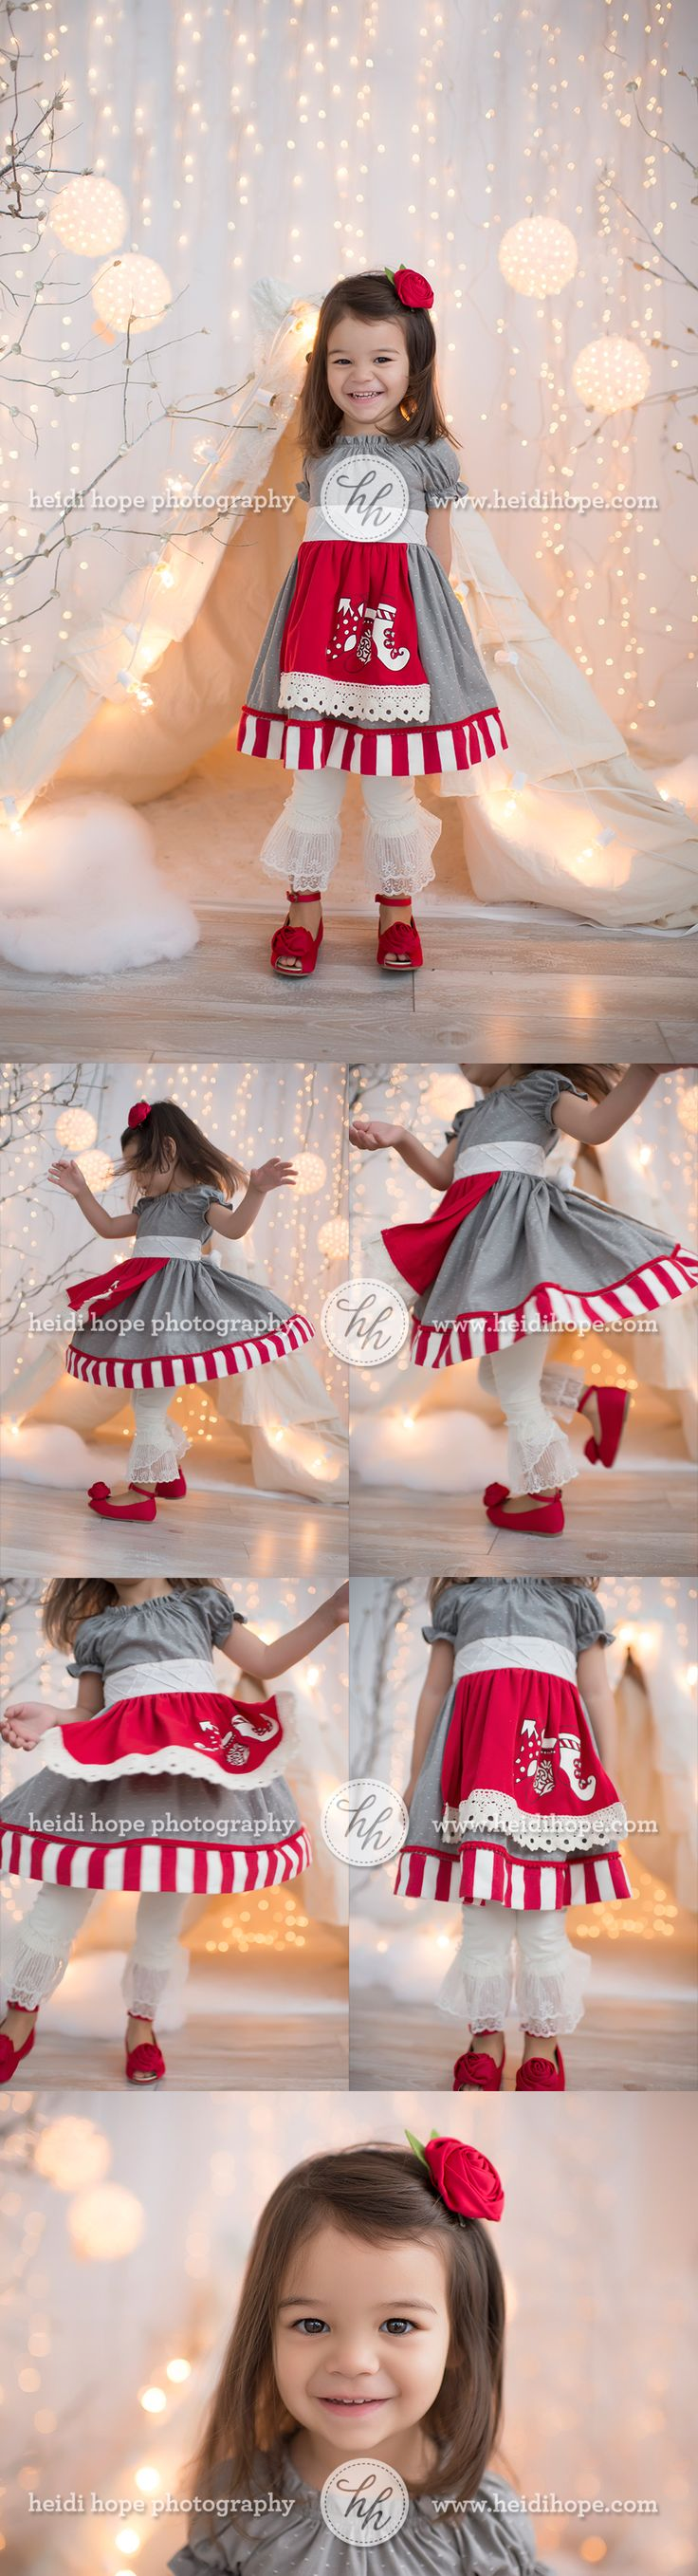 Gorgeous whimsical holiday studio christmas session set up with lace teepee tent and lights